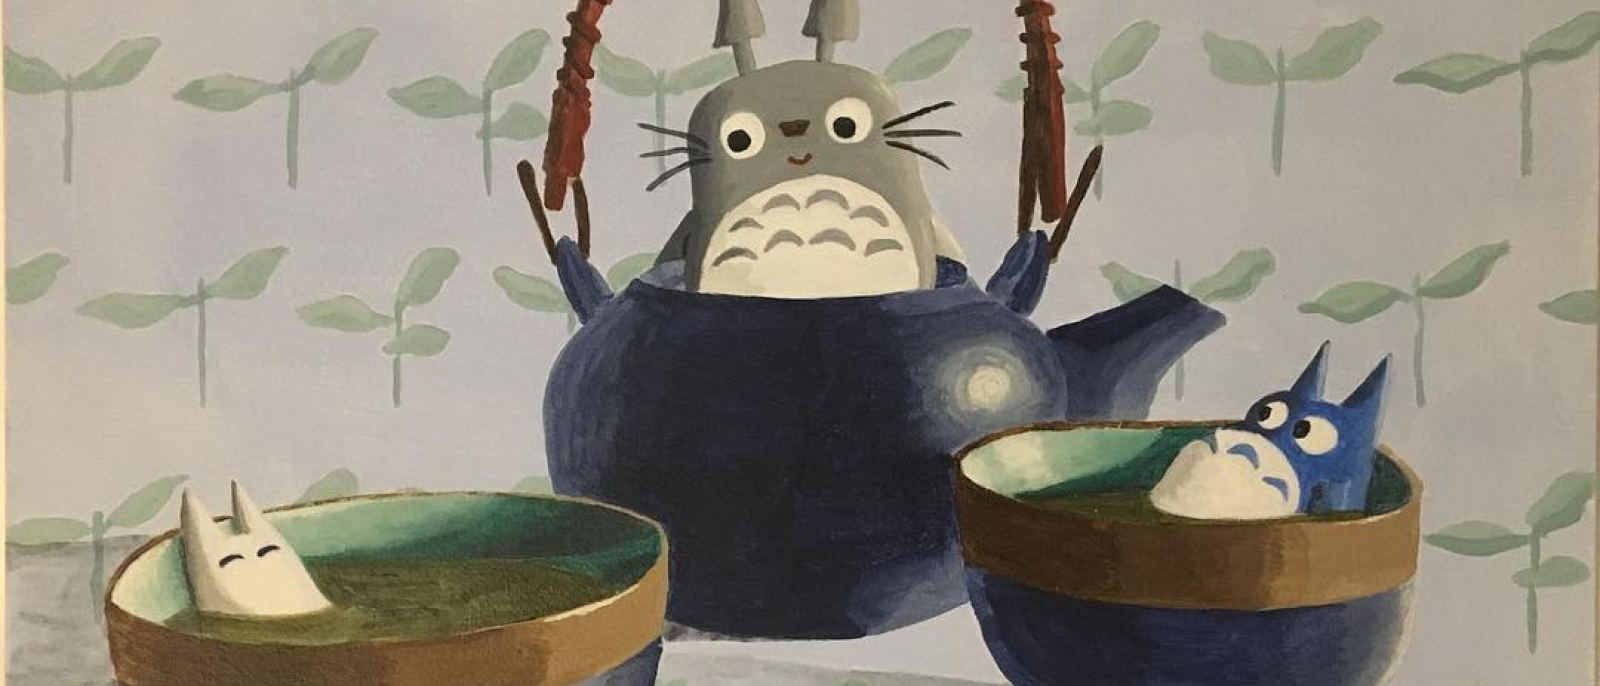 Totoro Tea painting by Nikki Longfish at Giant Robot